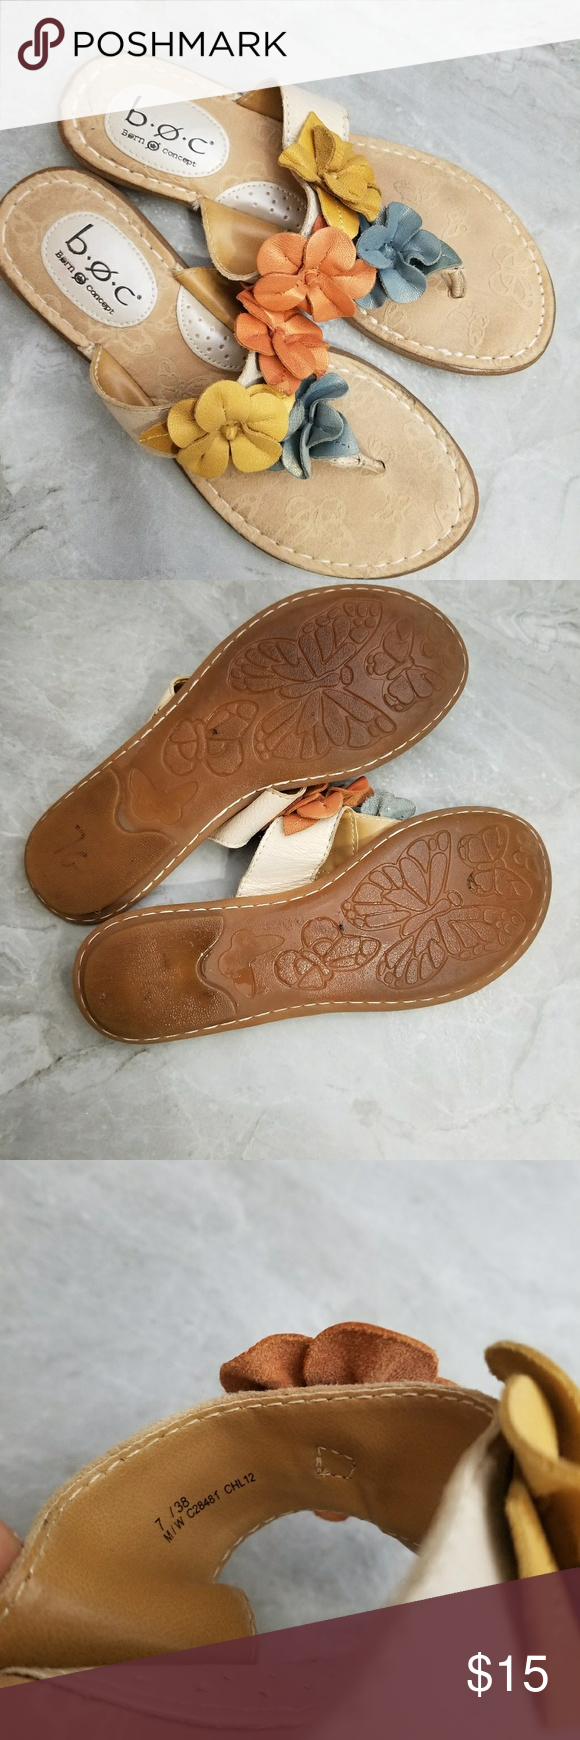 da56f1a66e8f B.O.C. Sandals Good Condition B.O.C Sandals with Flower details. Size 7  B.O.C Shoes Sandals